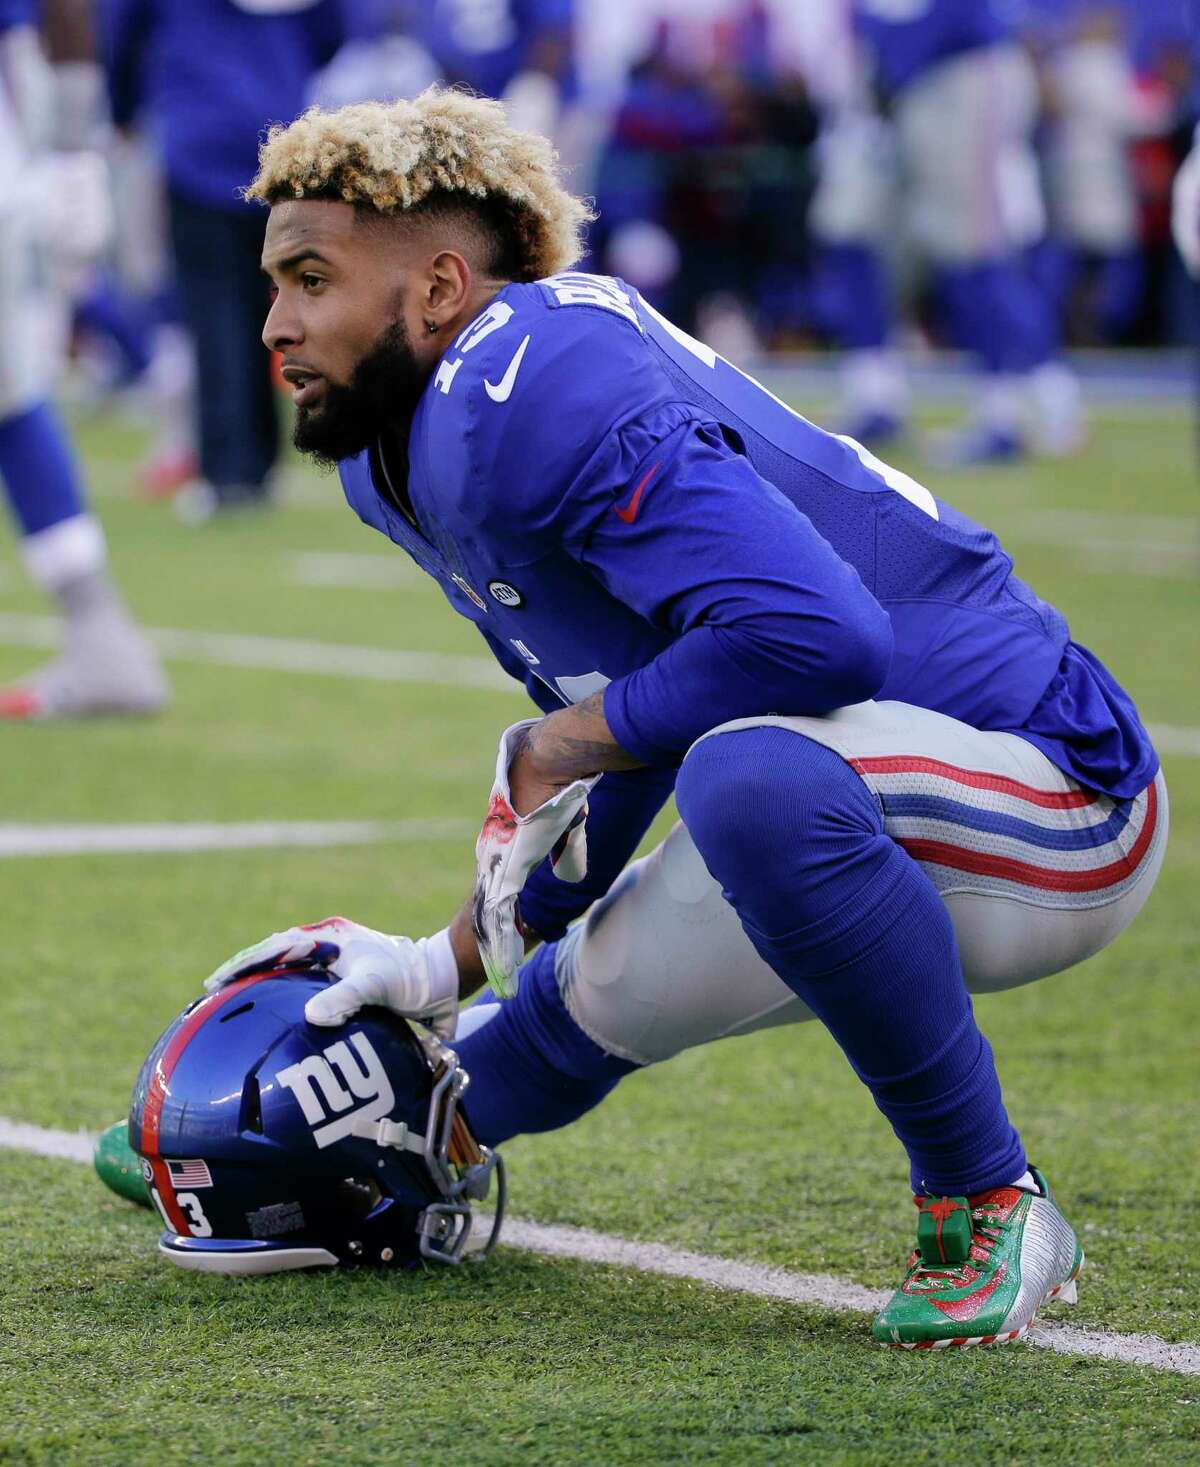 Giants wide receiver Odell Beckham was suspended by the NFL for one game for his conduct in Sunday's loss to the Panthers.